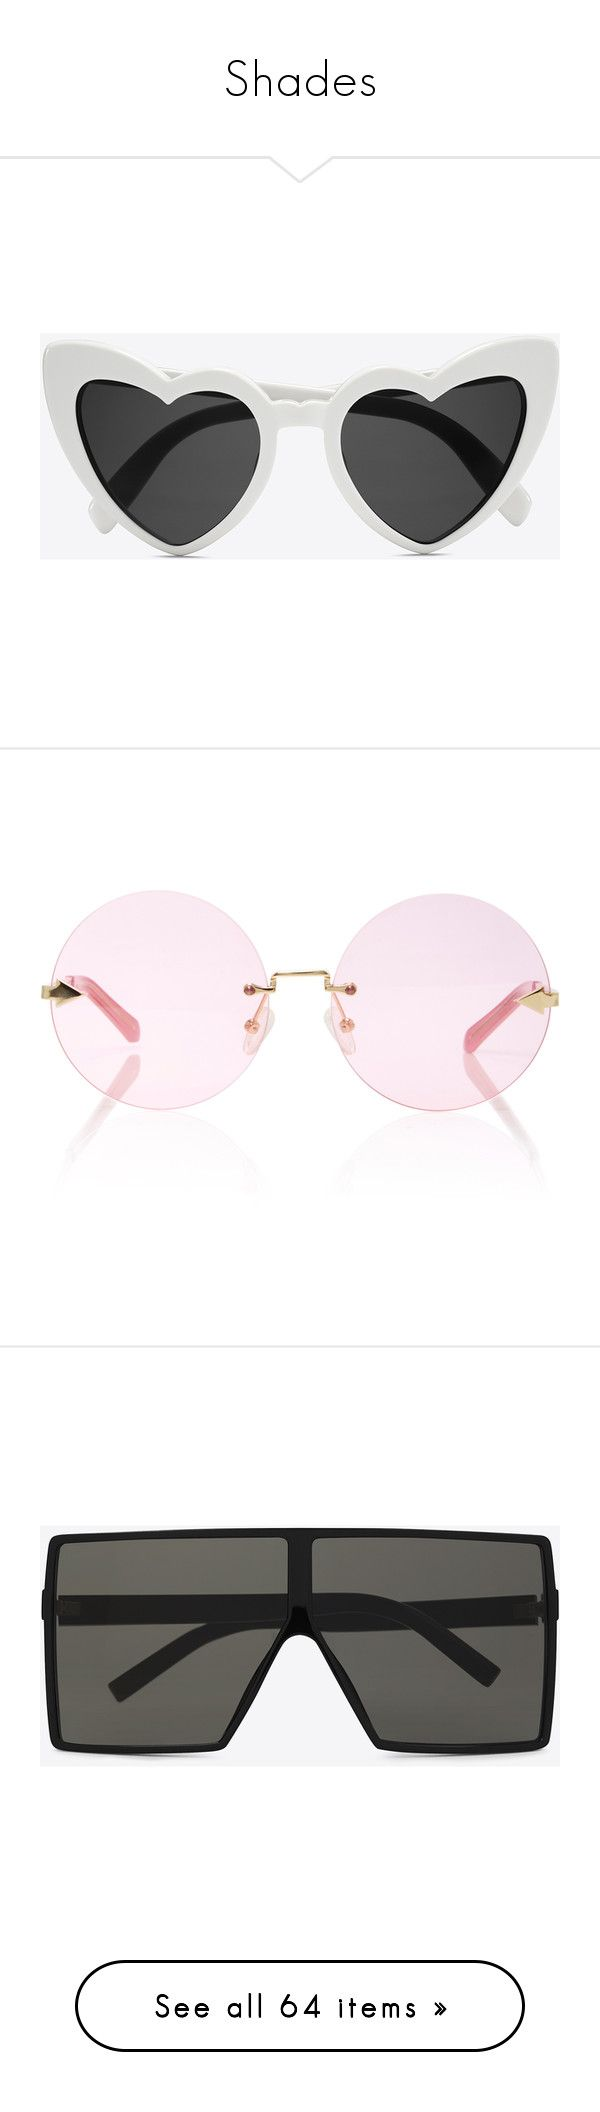 """""""Shades"""" by maryisnotmyname ❤ liked on Polyvore featuring accessories, eyewear, sunglasses, oversized glasses, oversized sunglasses, over sized sunglasses, heart shaped glasses, heart sunglasses, glasses and pink"""